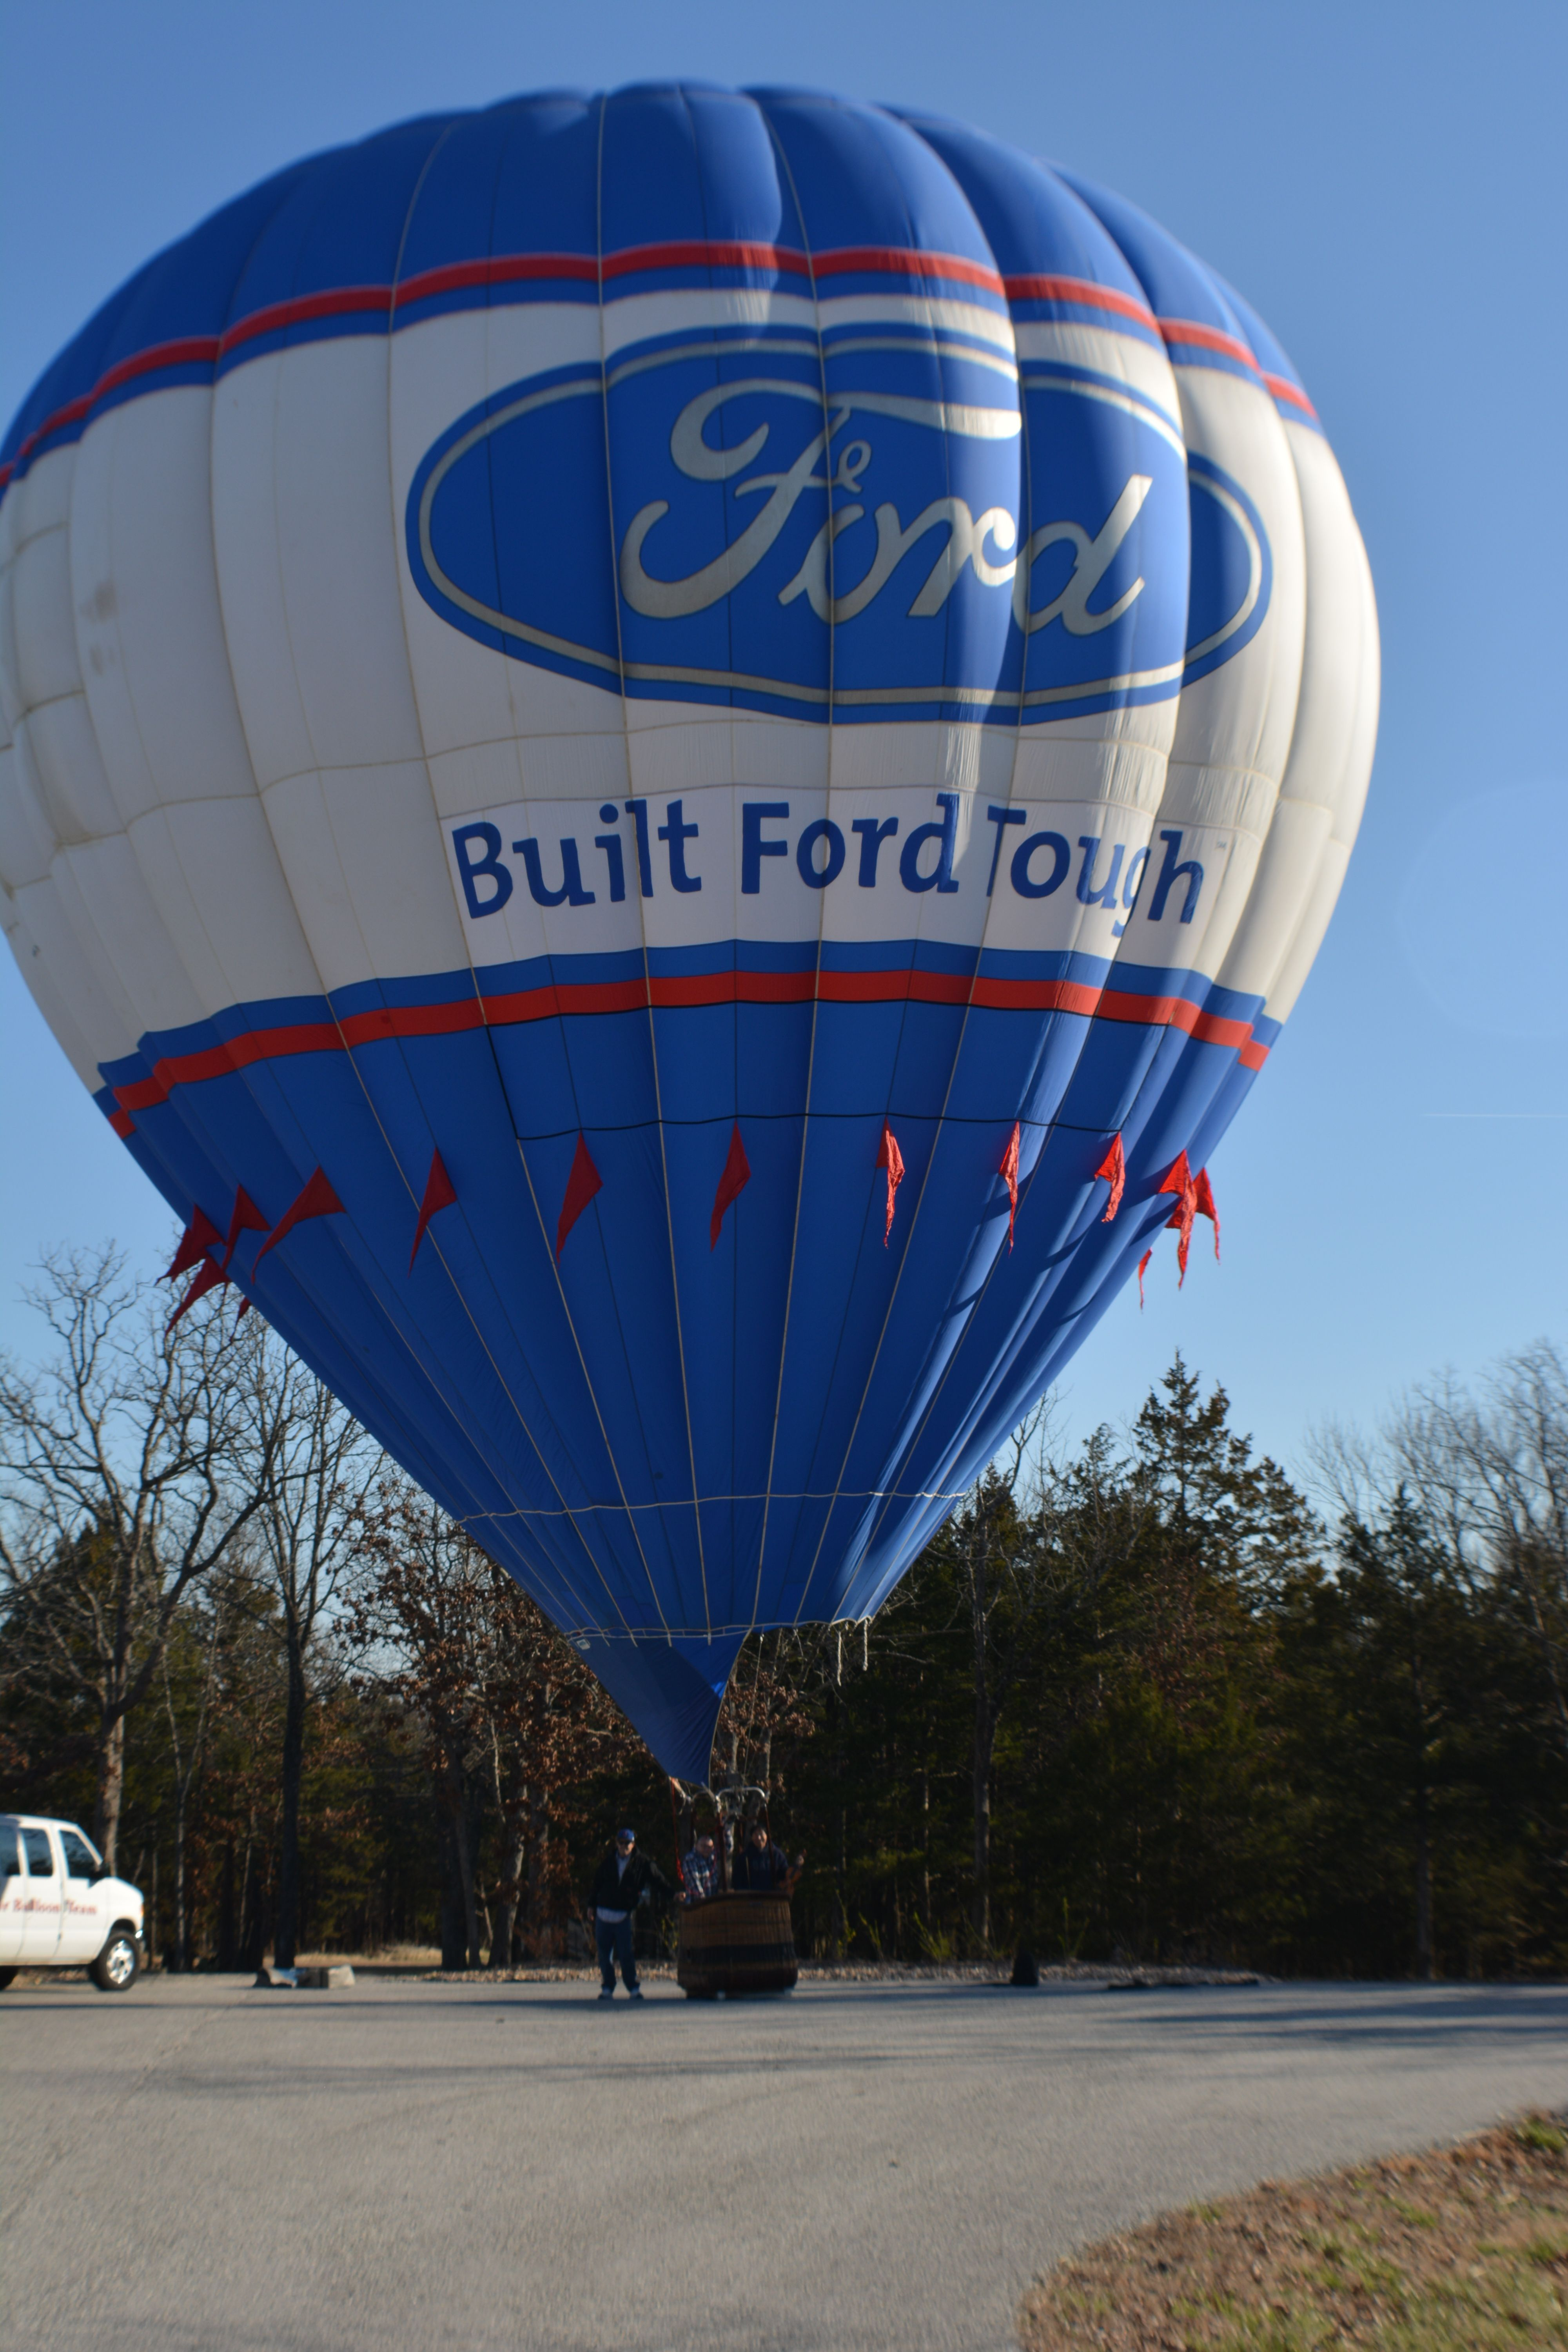 Welcome To James Hodge Ford Inc Serving Broken Bow De Queen Ar Texarkana Tx And Paris Tx Not Only Will You Find Ford Models At Our Dealership Ford Paris Tx